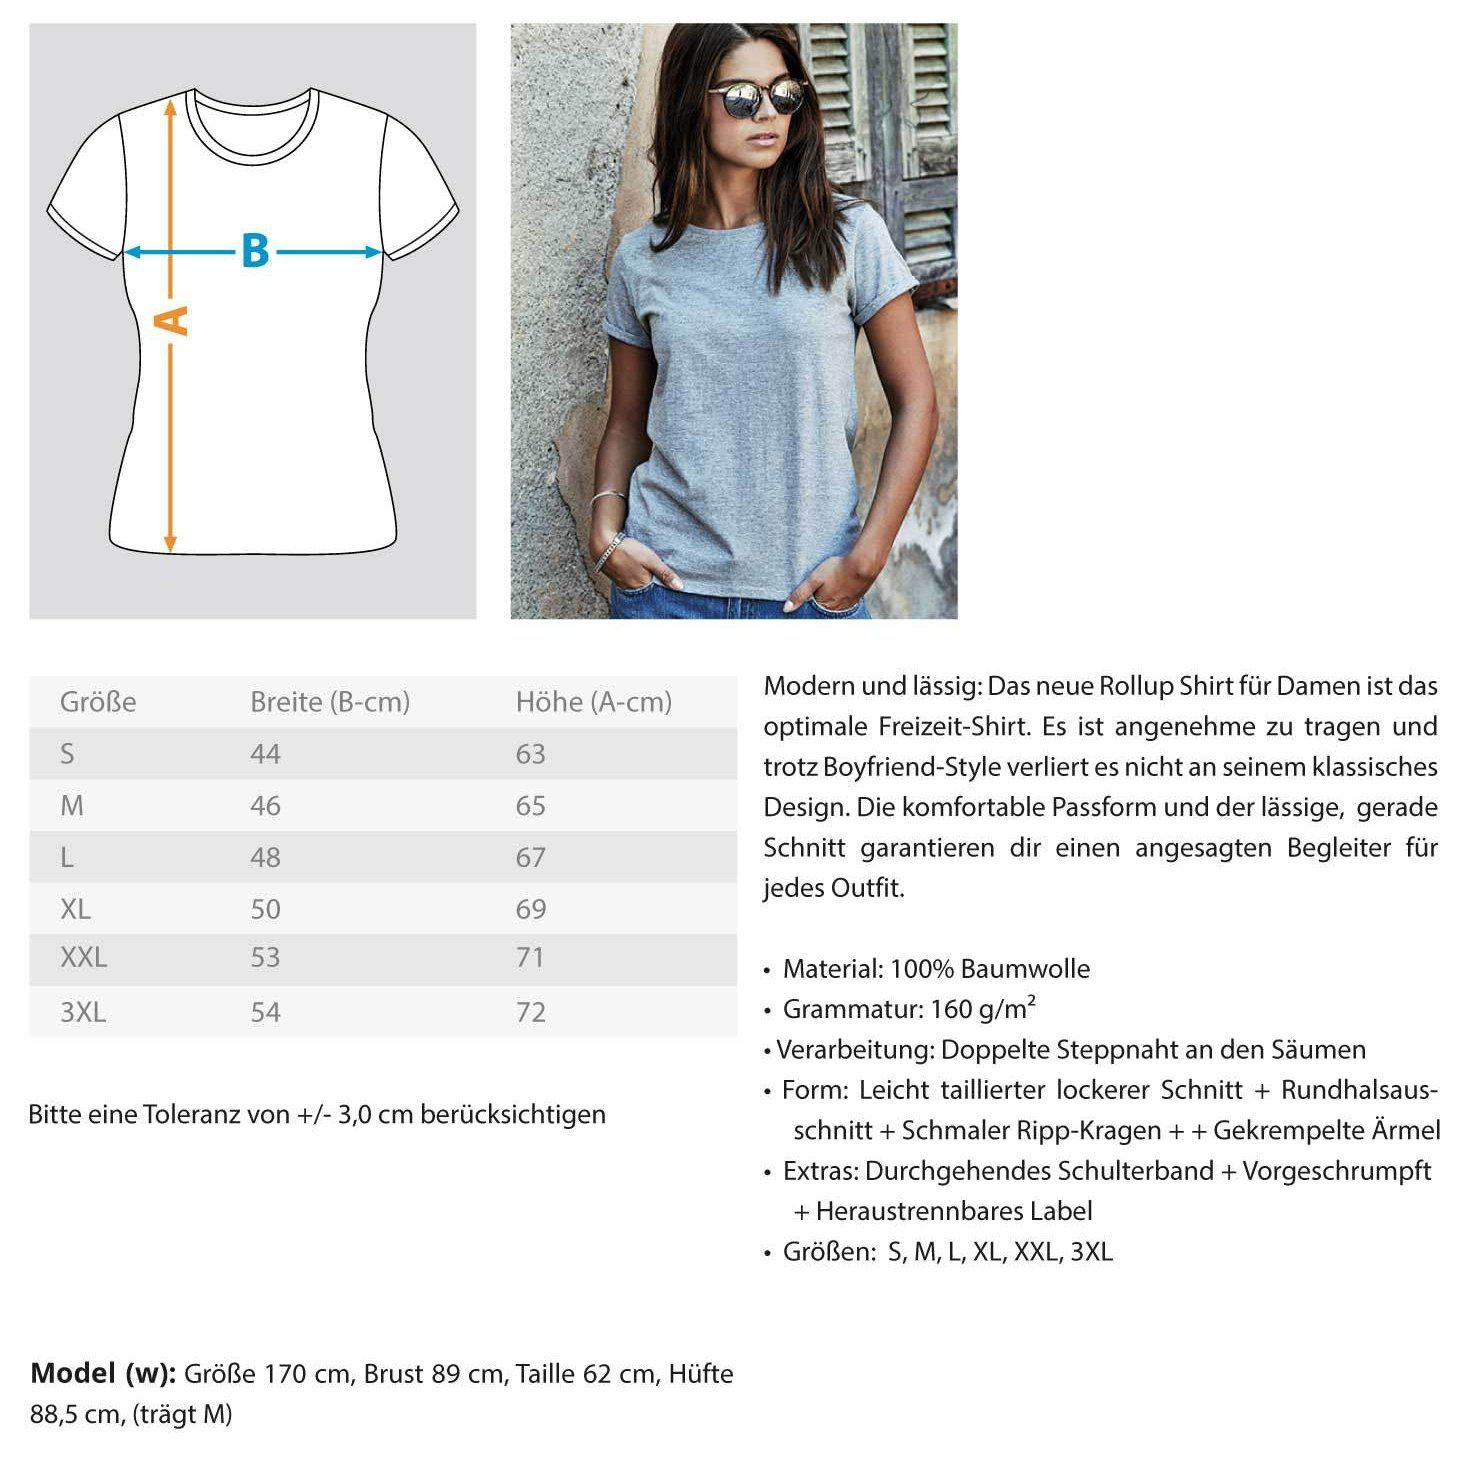 Vibe with Me - Rave On!® Designer Shirt - Ladies RollUp Shirt Women Rollup Shirt - Rave On!® the club & techno scene shop for cool young fashion streetwear style & fashion outfits + sexy festival 420 stuff